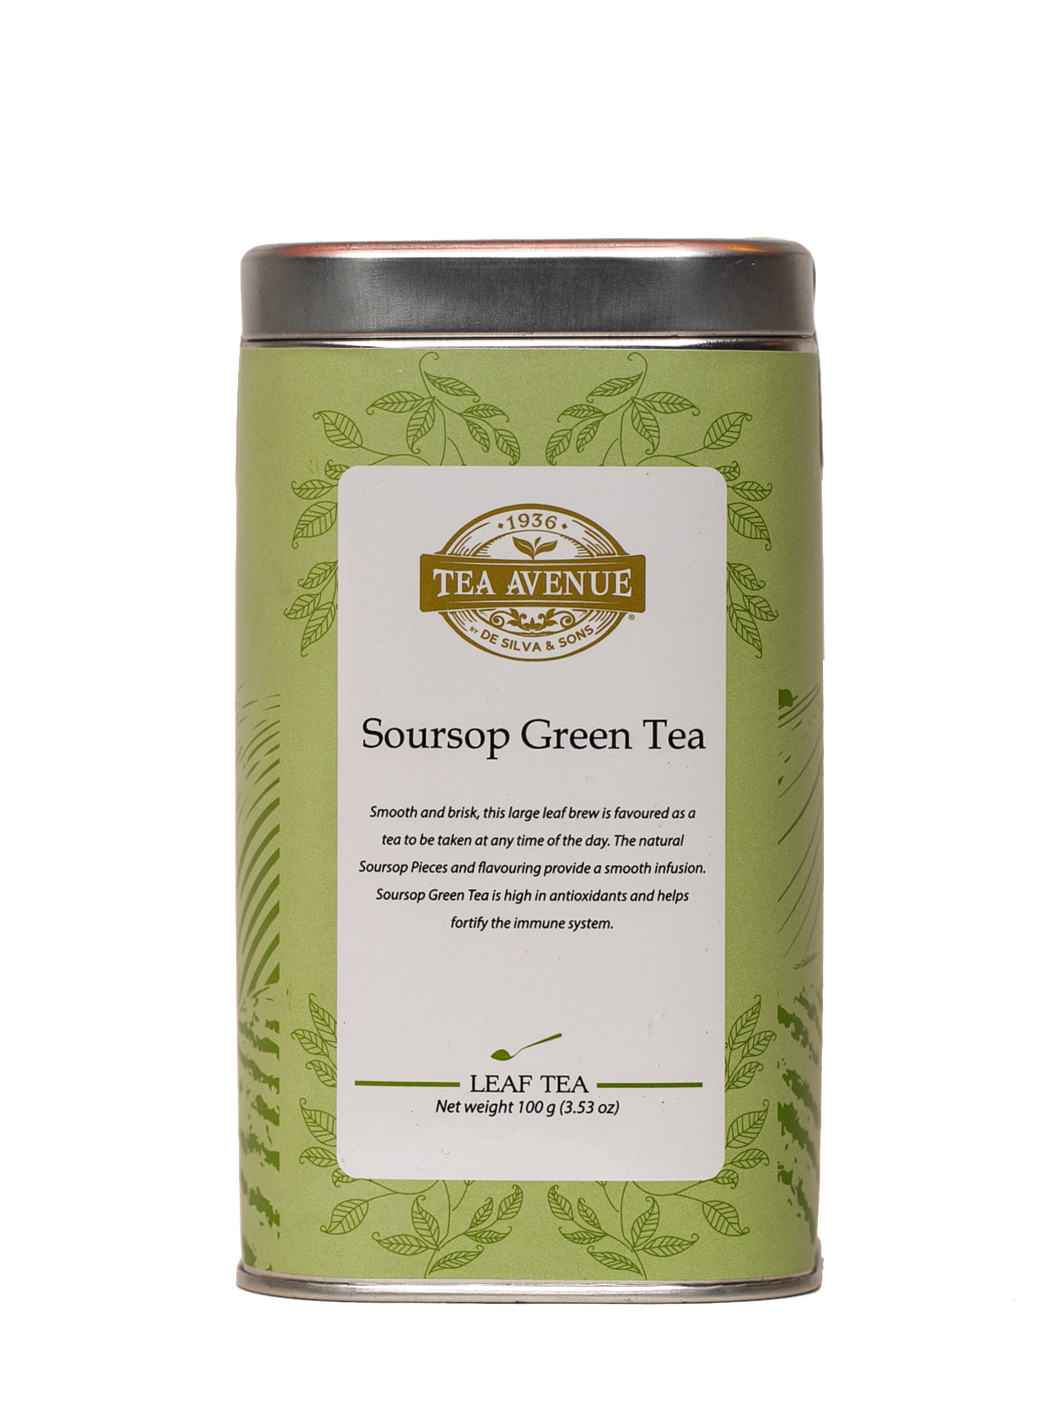 Soursop Green Tea